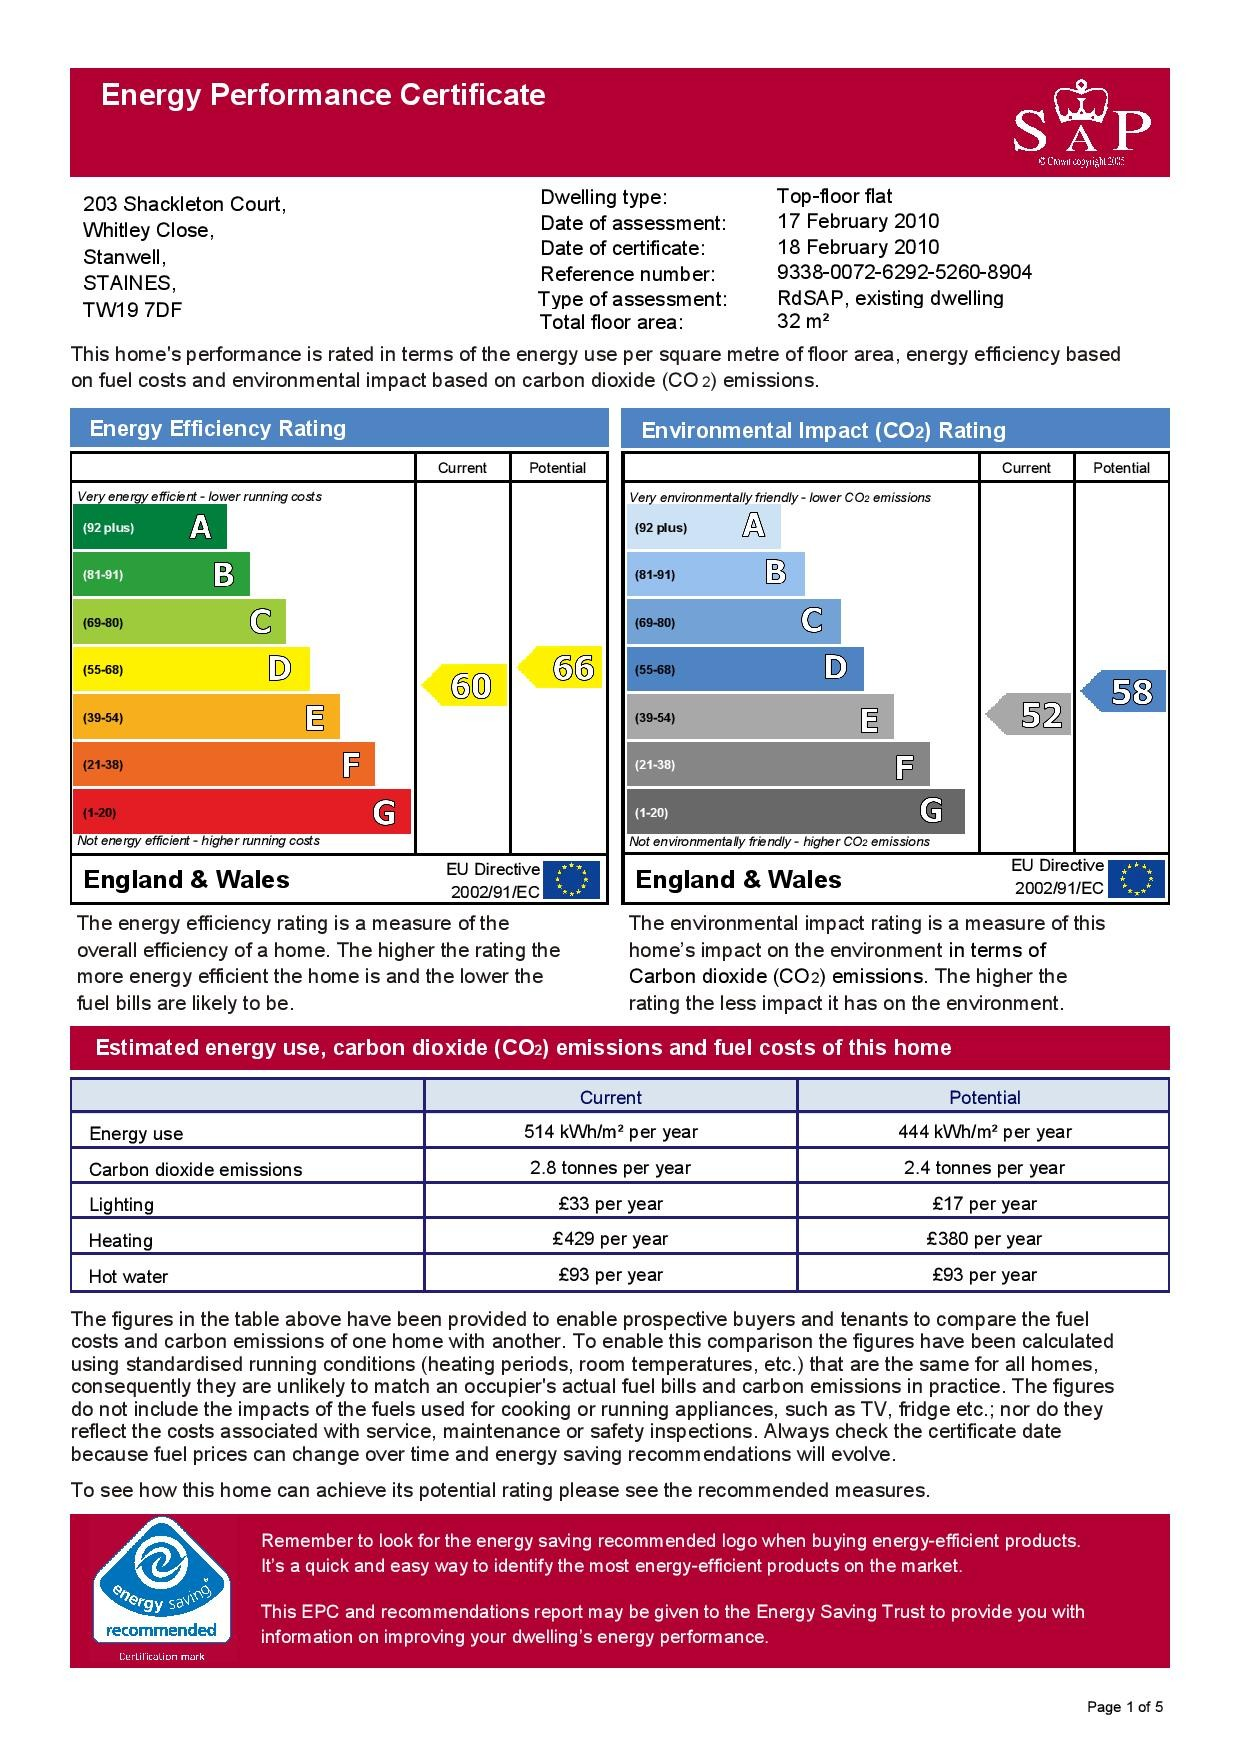 EPC Graph for 203 Shackleton Court, Whitley Close, Stanwell, Middlesex TW19 7DF